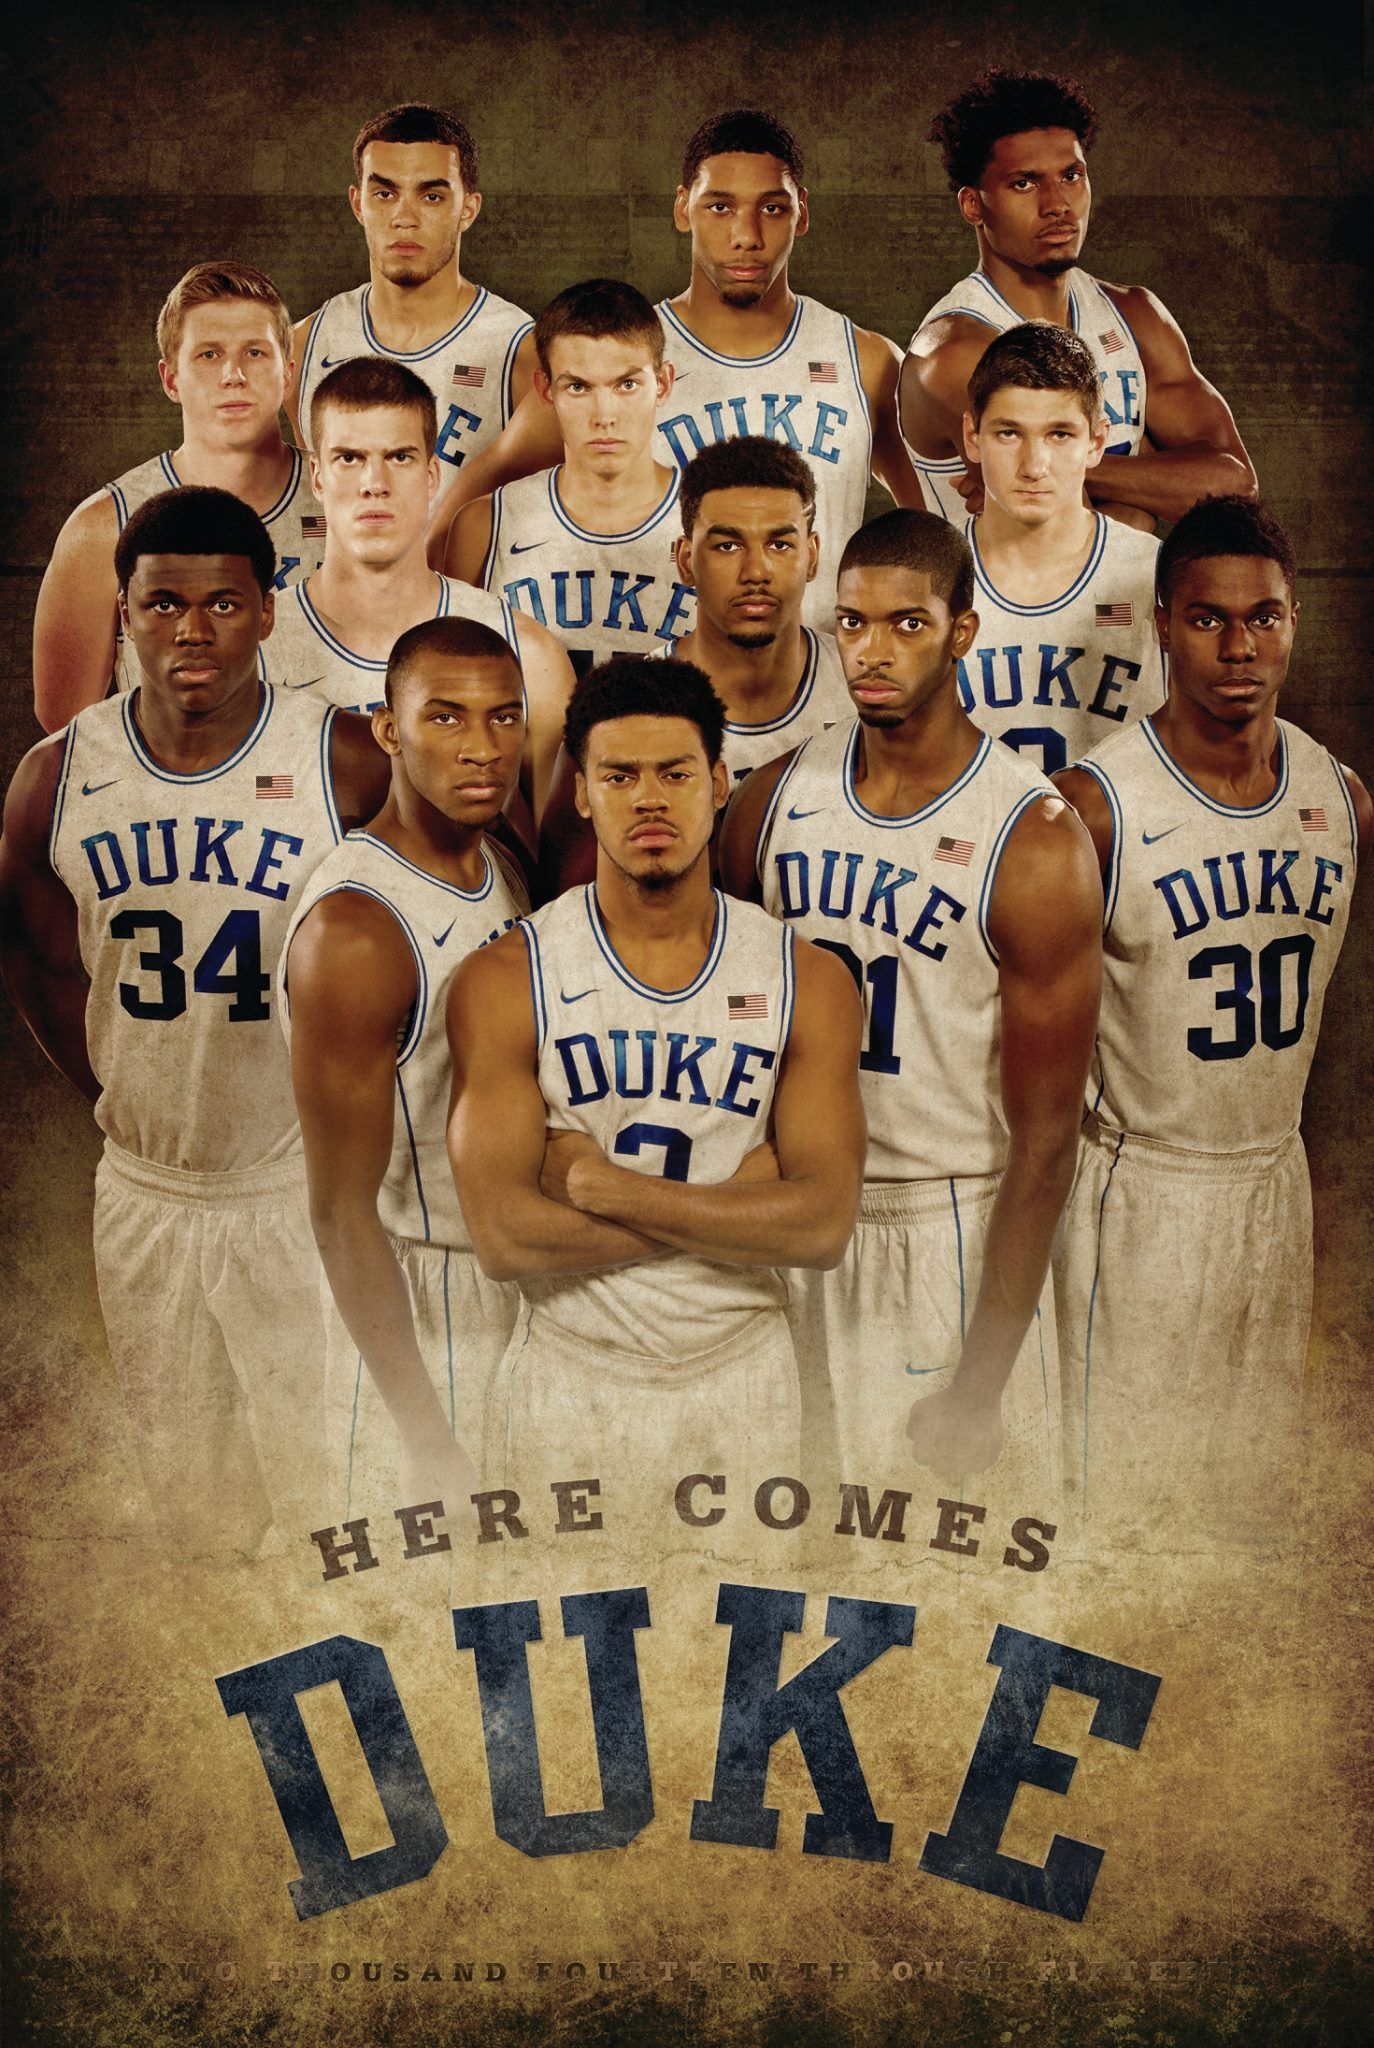 Go Duke This Is A Photo Of This Year S 2014 2015 Basketball Team And I Believe We Should Contend For T Basketball Team Pictures Duke Basketball Team Pictures